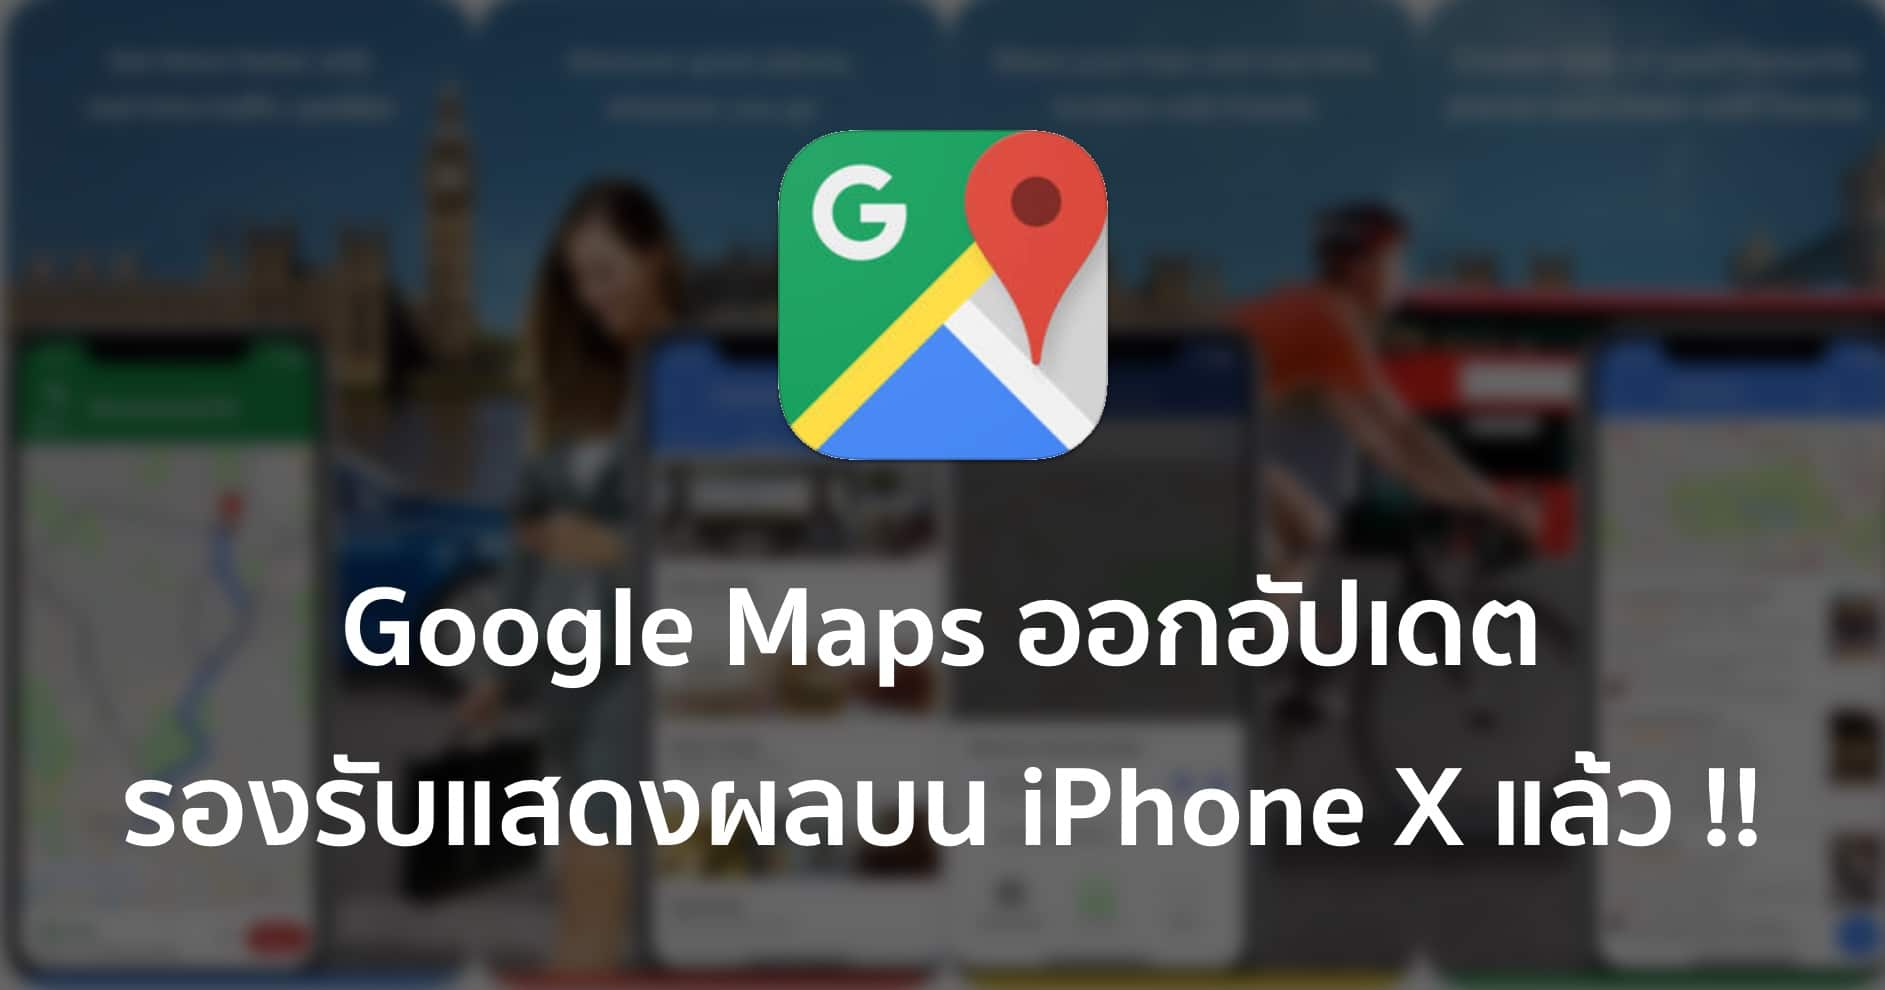 google maps iphone x 3